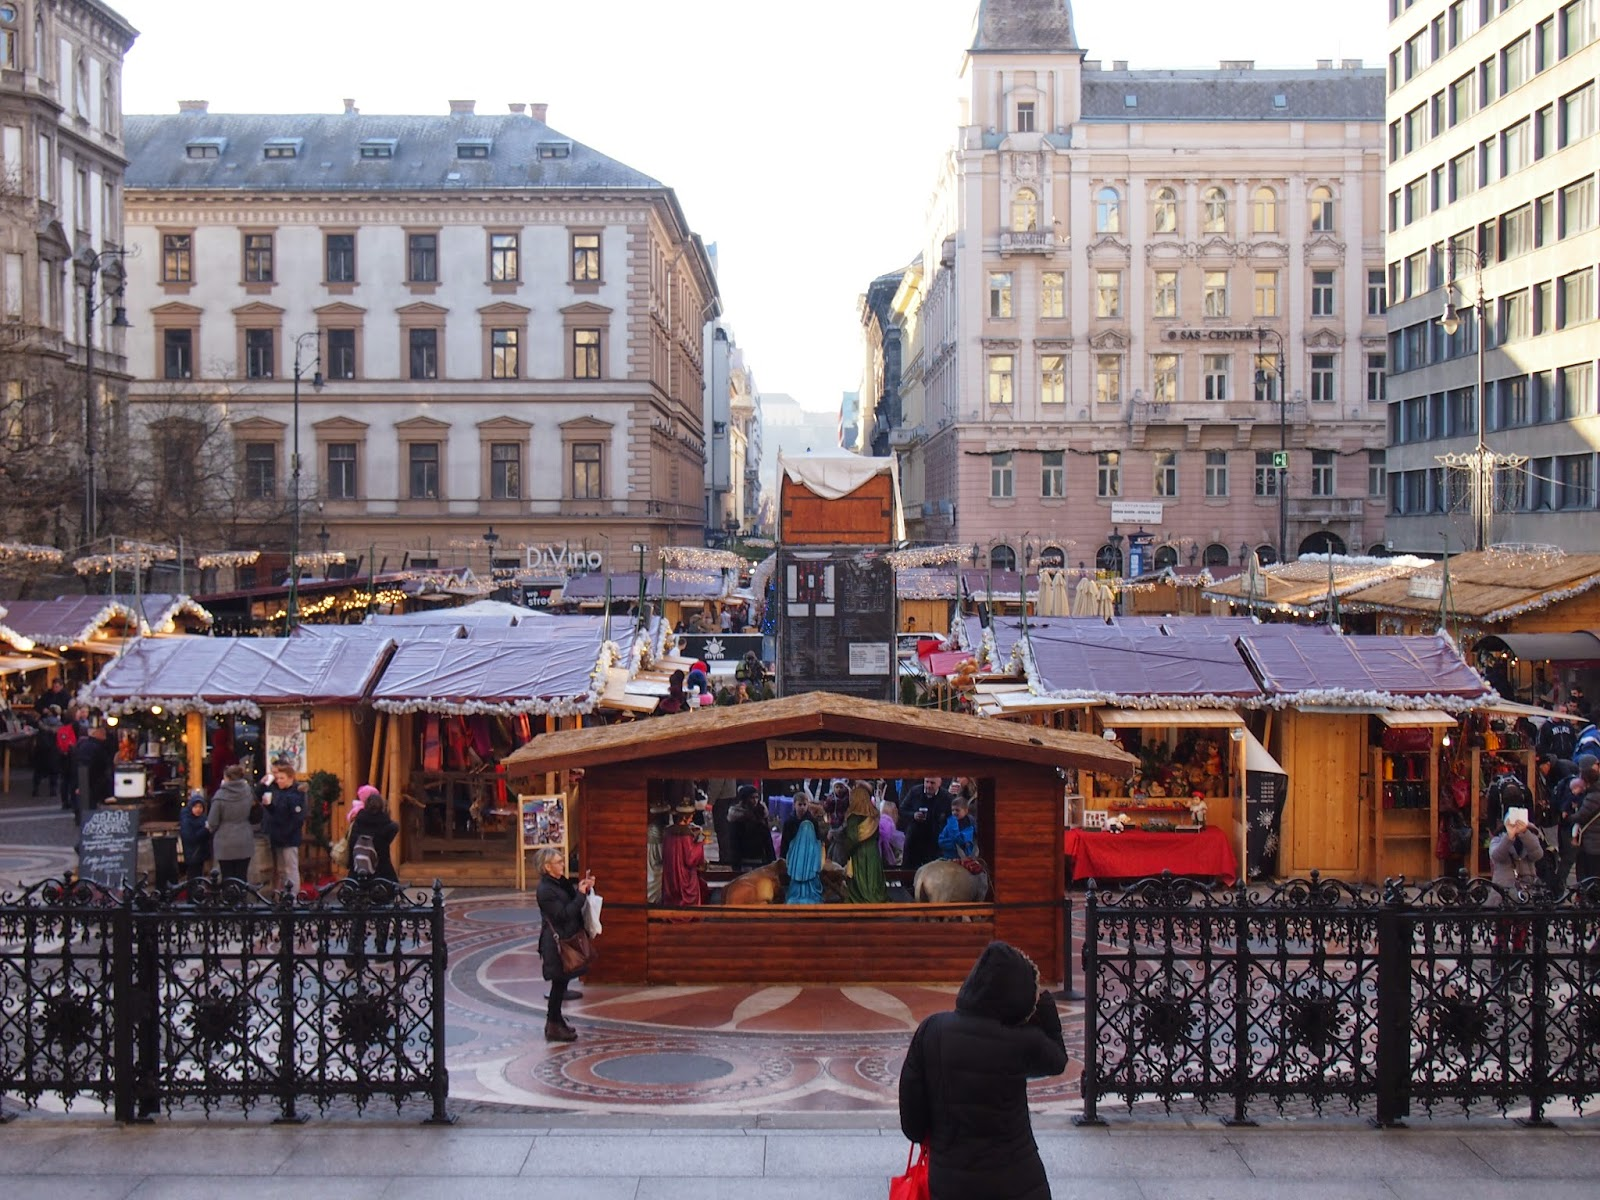 A Christmas Market in Budapest